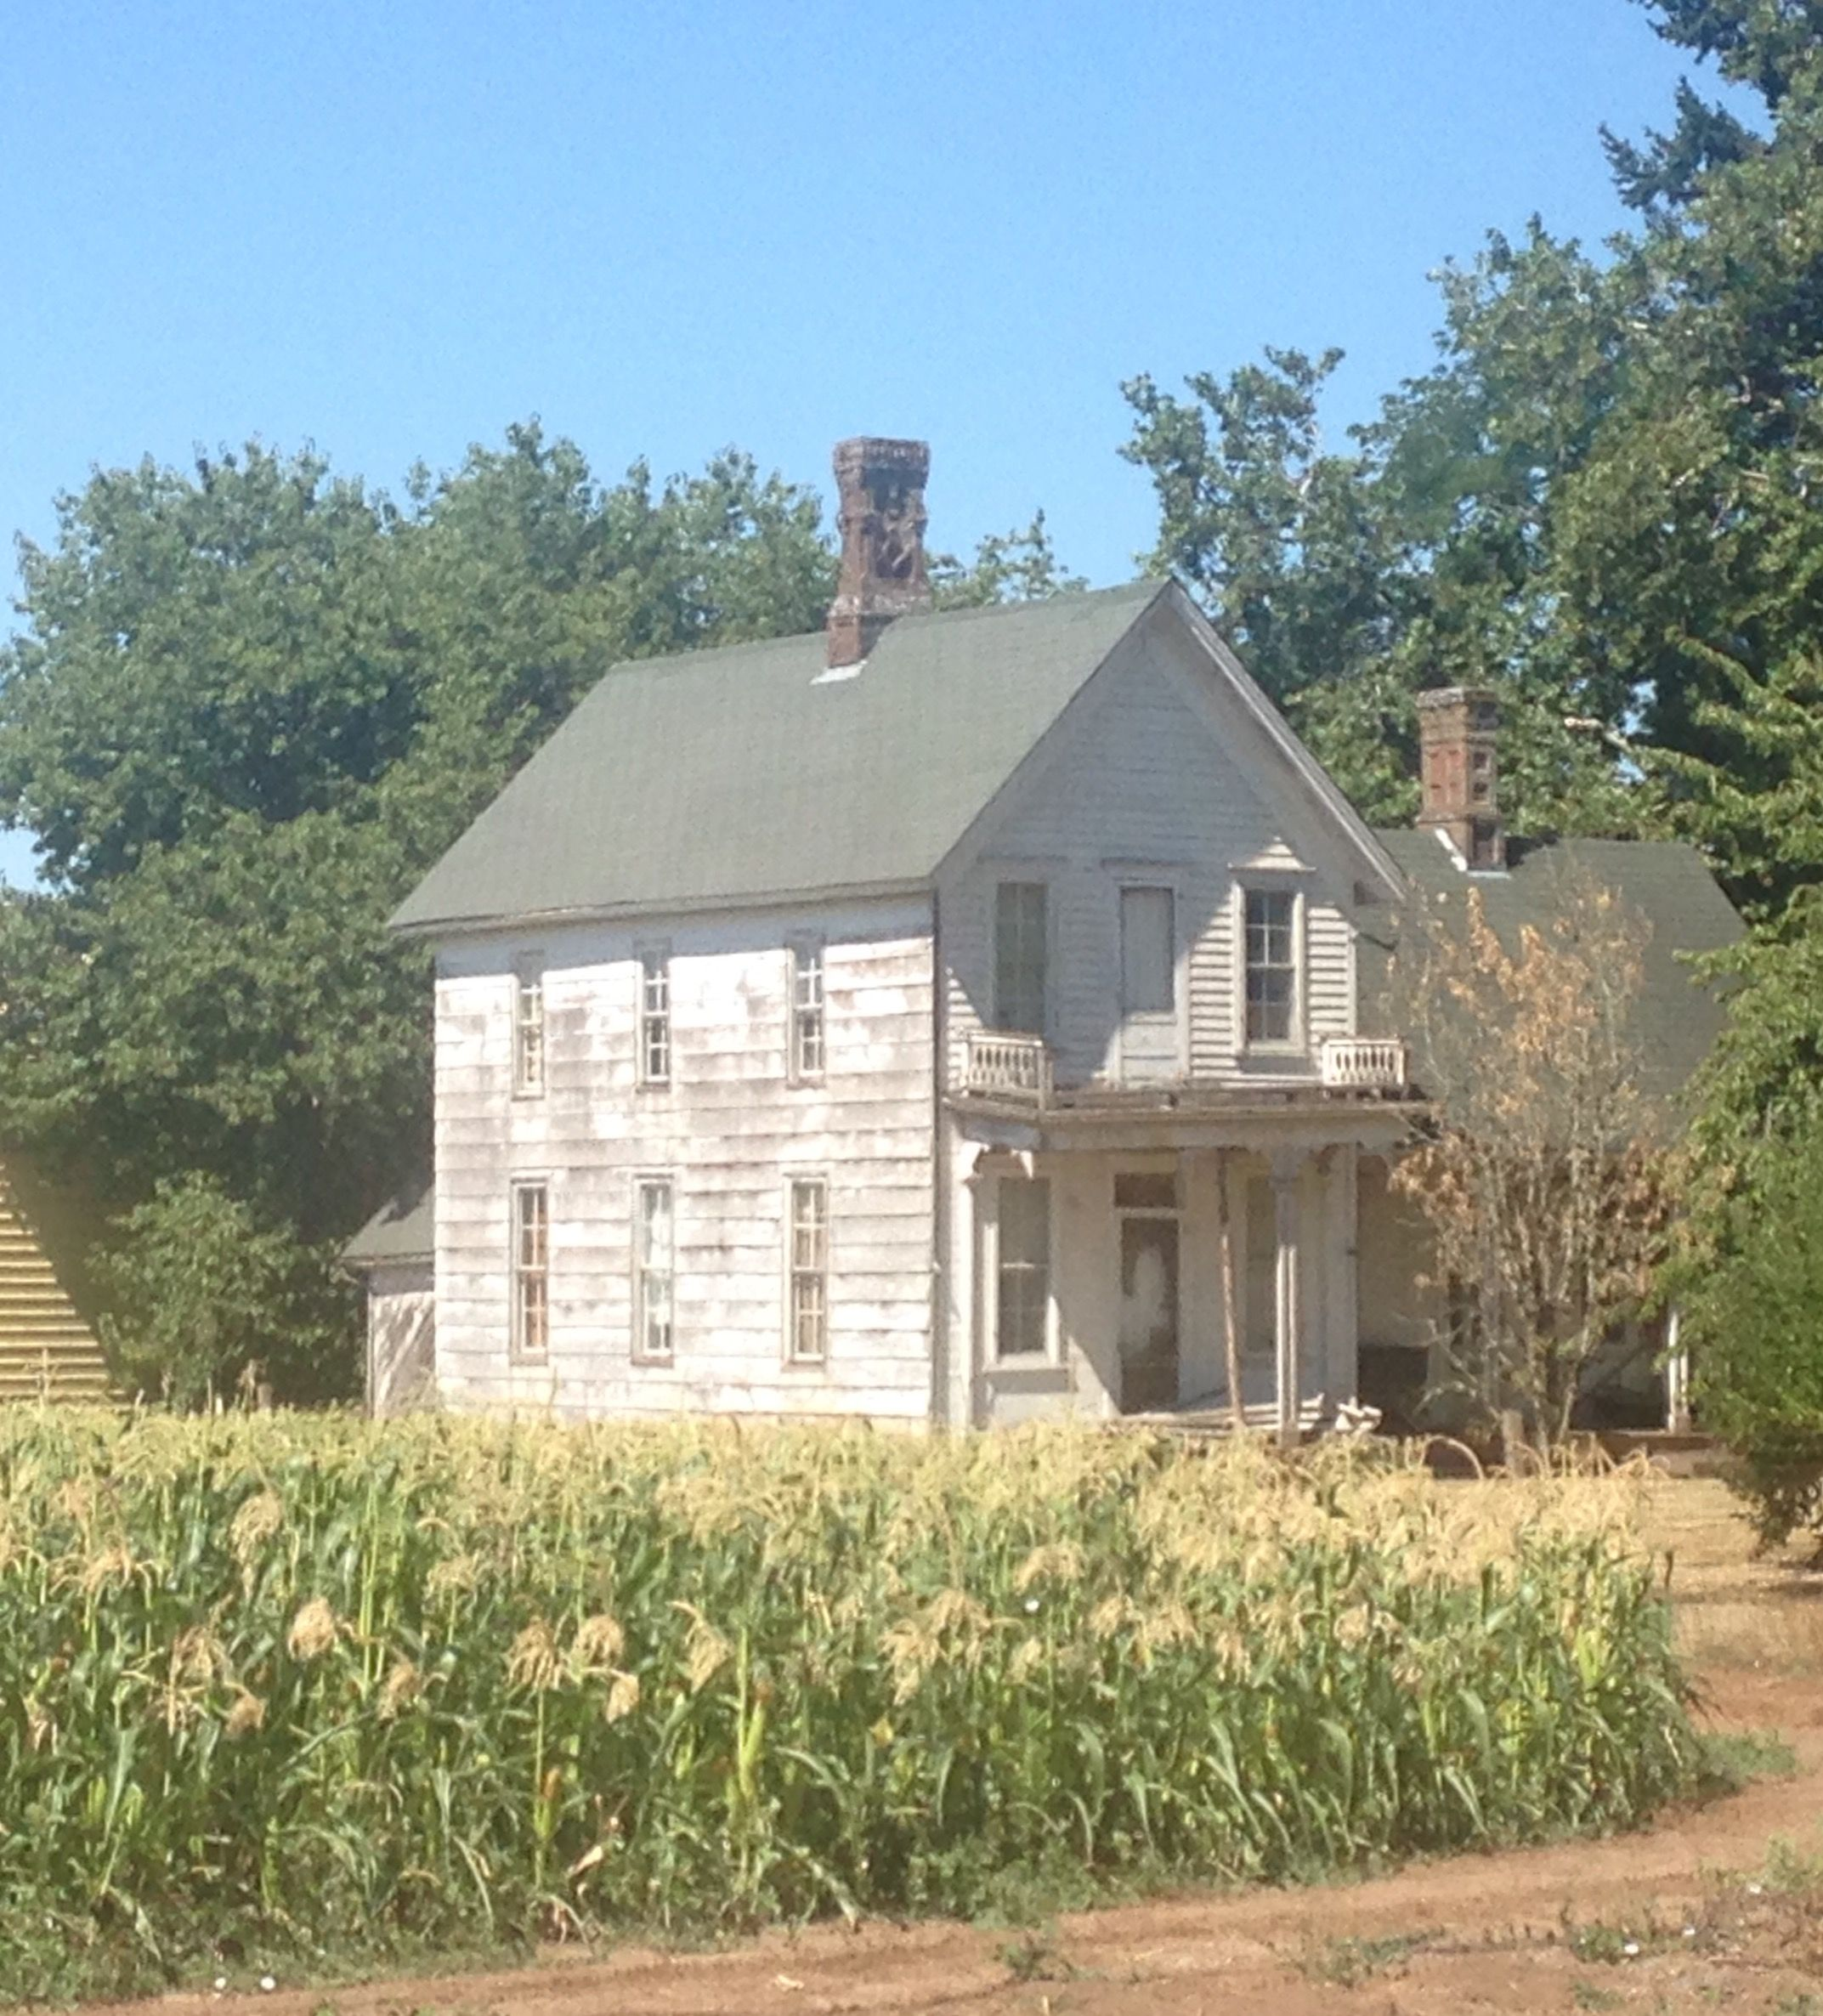 Old farmhouse with Masonic symbol in the brickwork of the